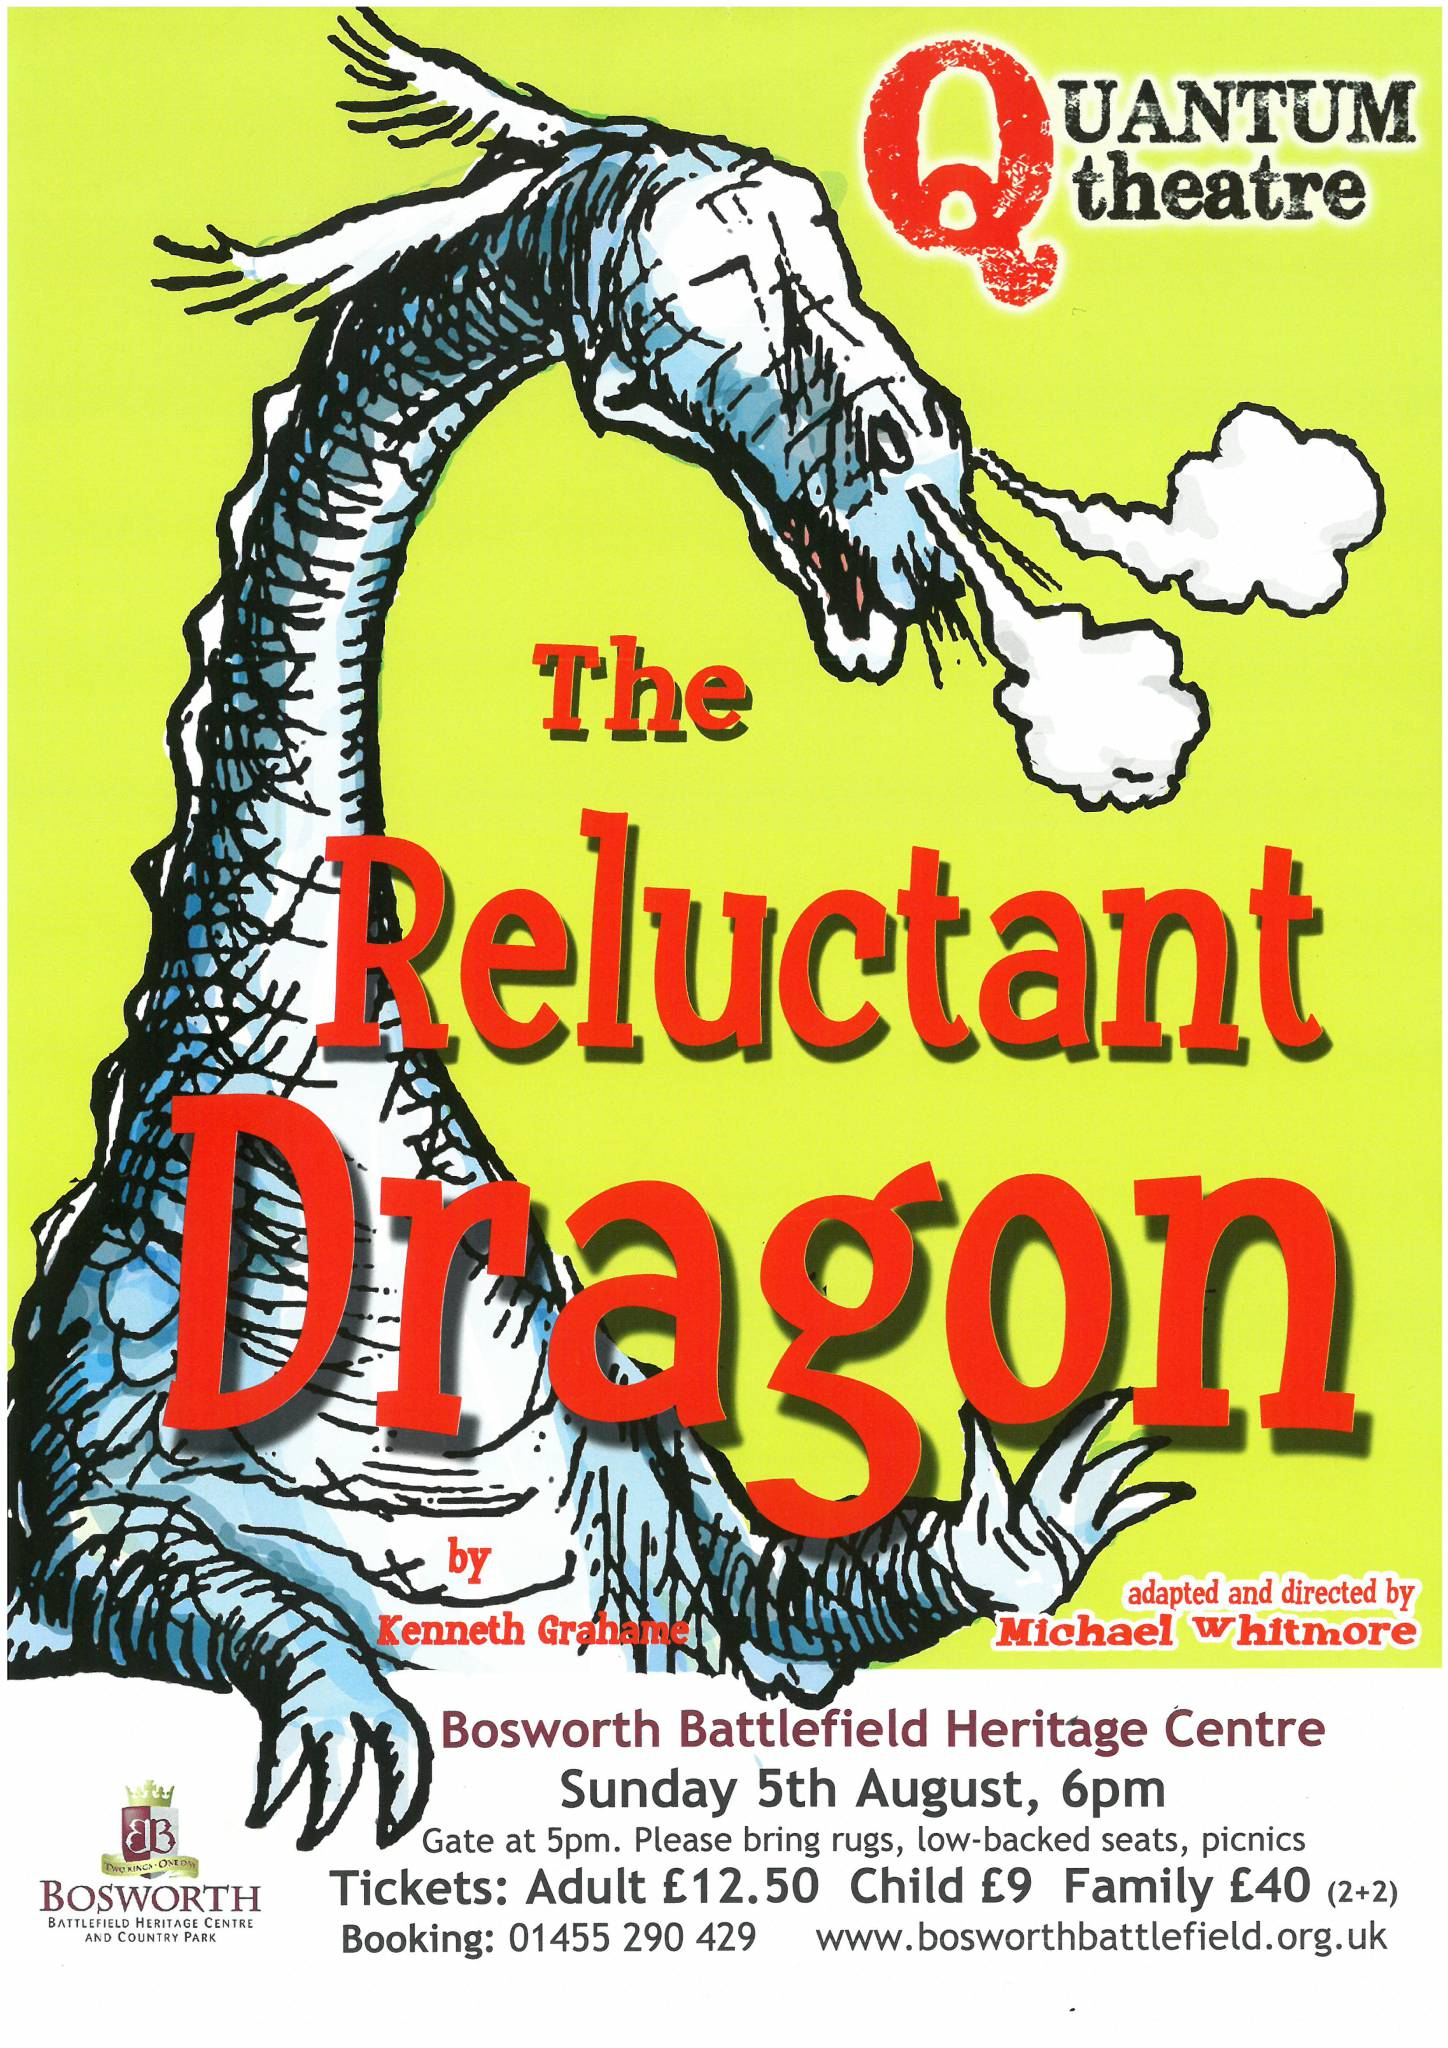 Outdoor Theatre: The Reluctant Dragon